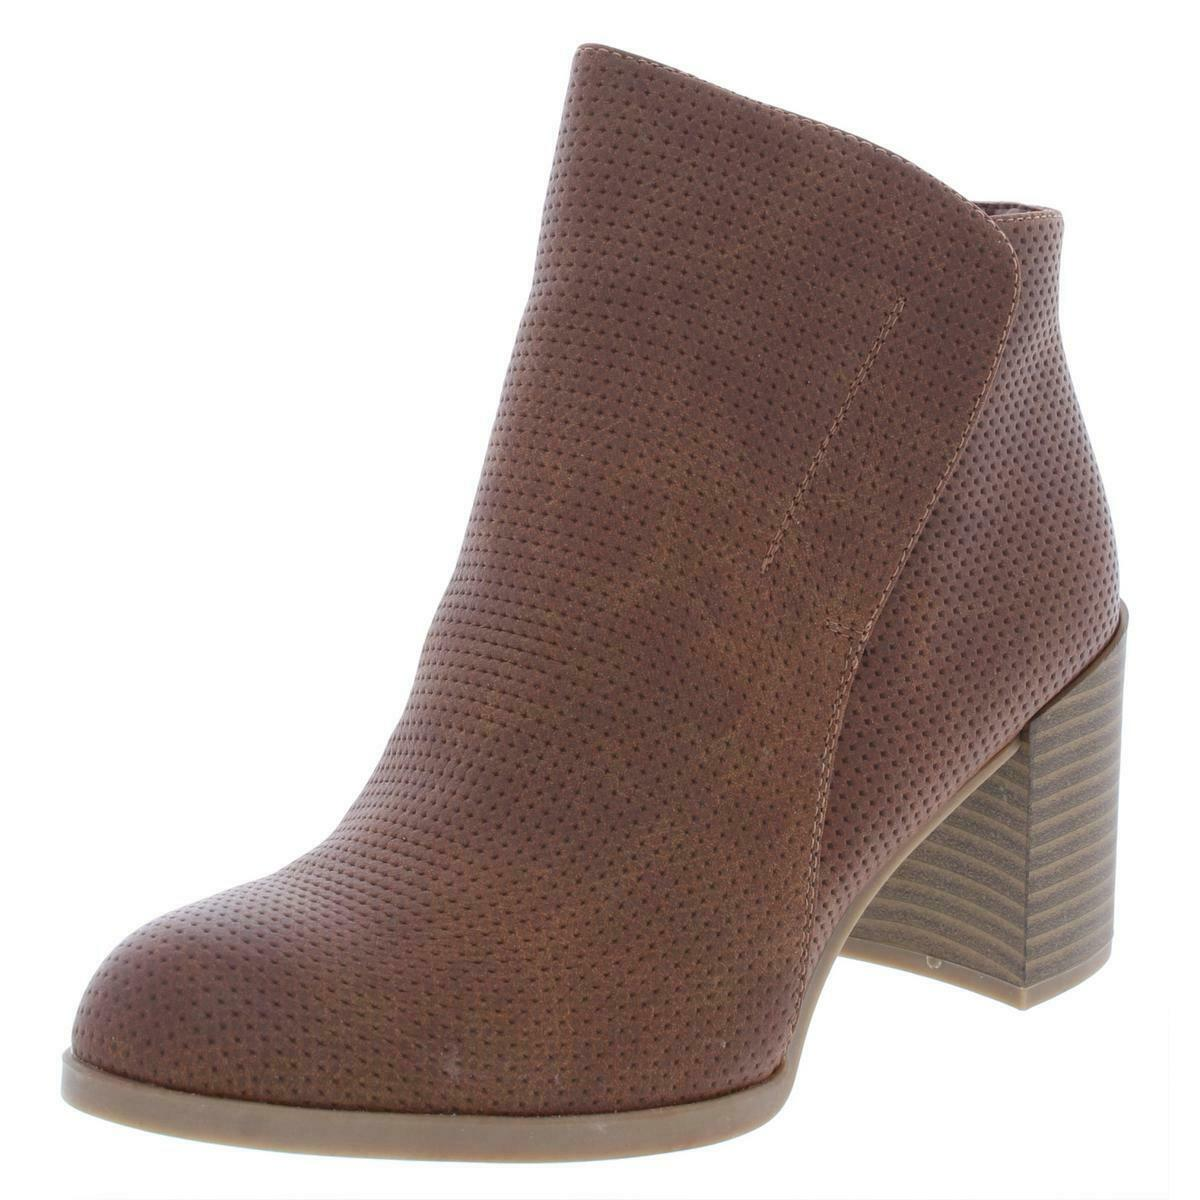 Naturalizer Womens Holt Faux Leather Ankle Perforated Booties Heels BHFO 0032